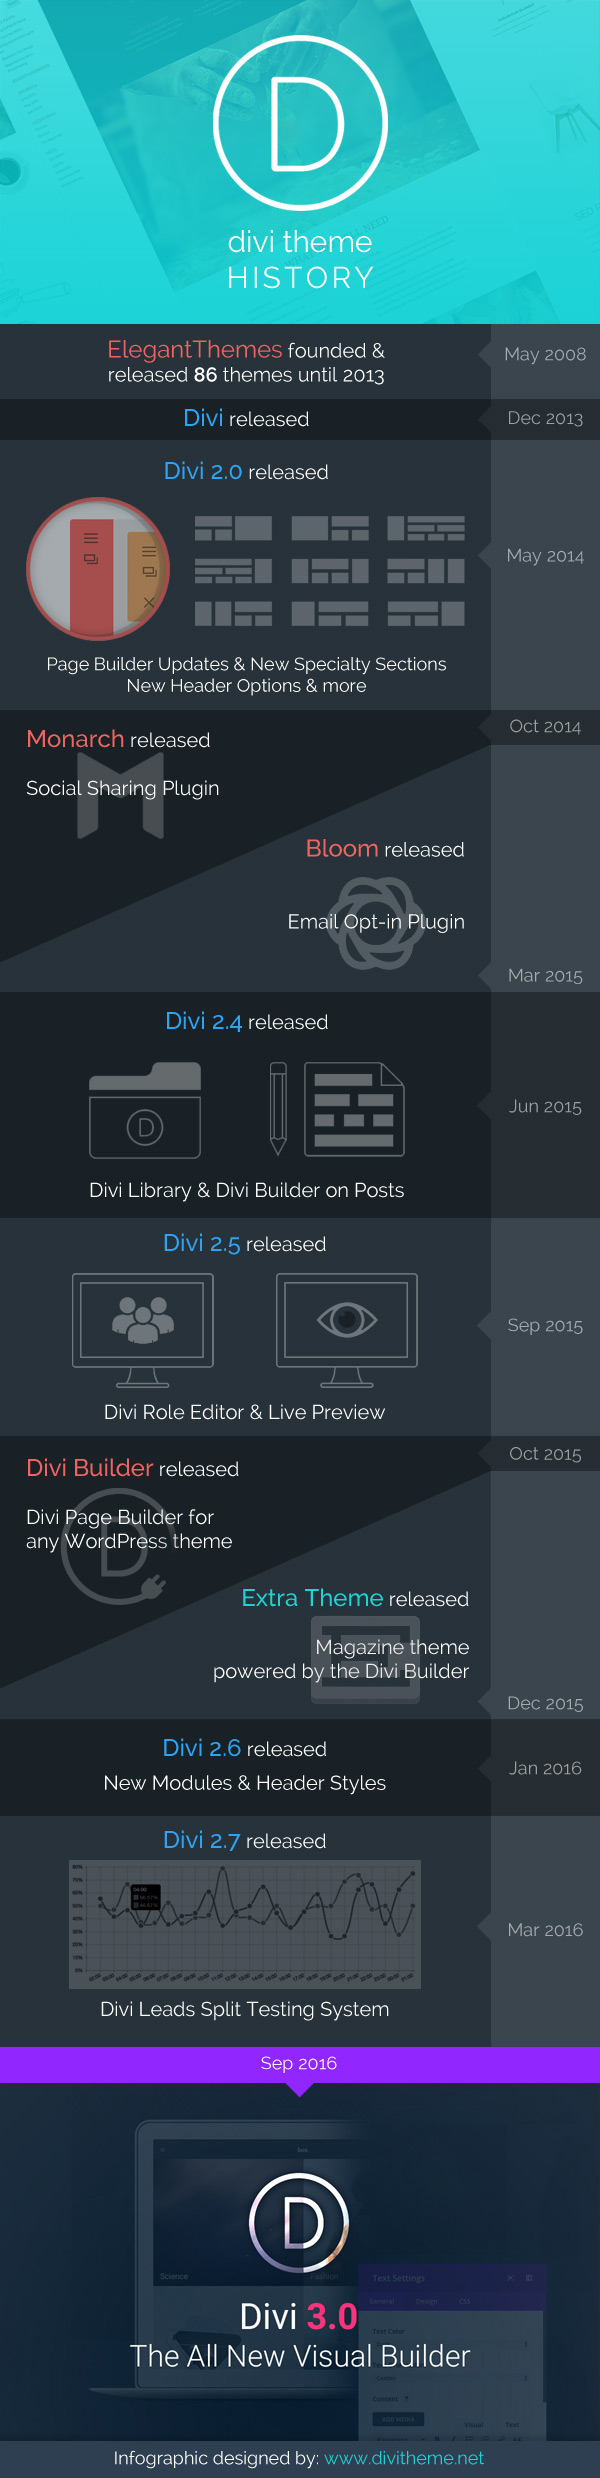 Divi History Infographic